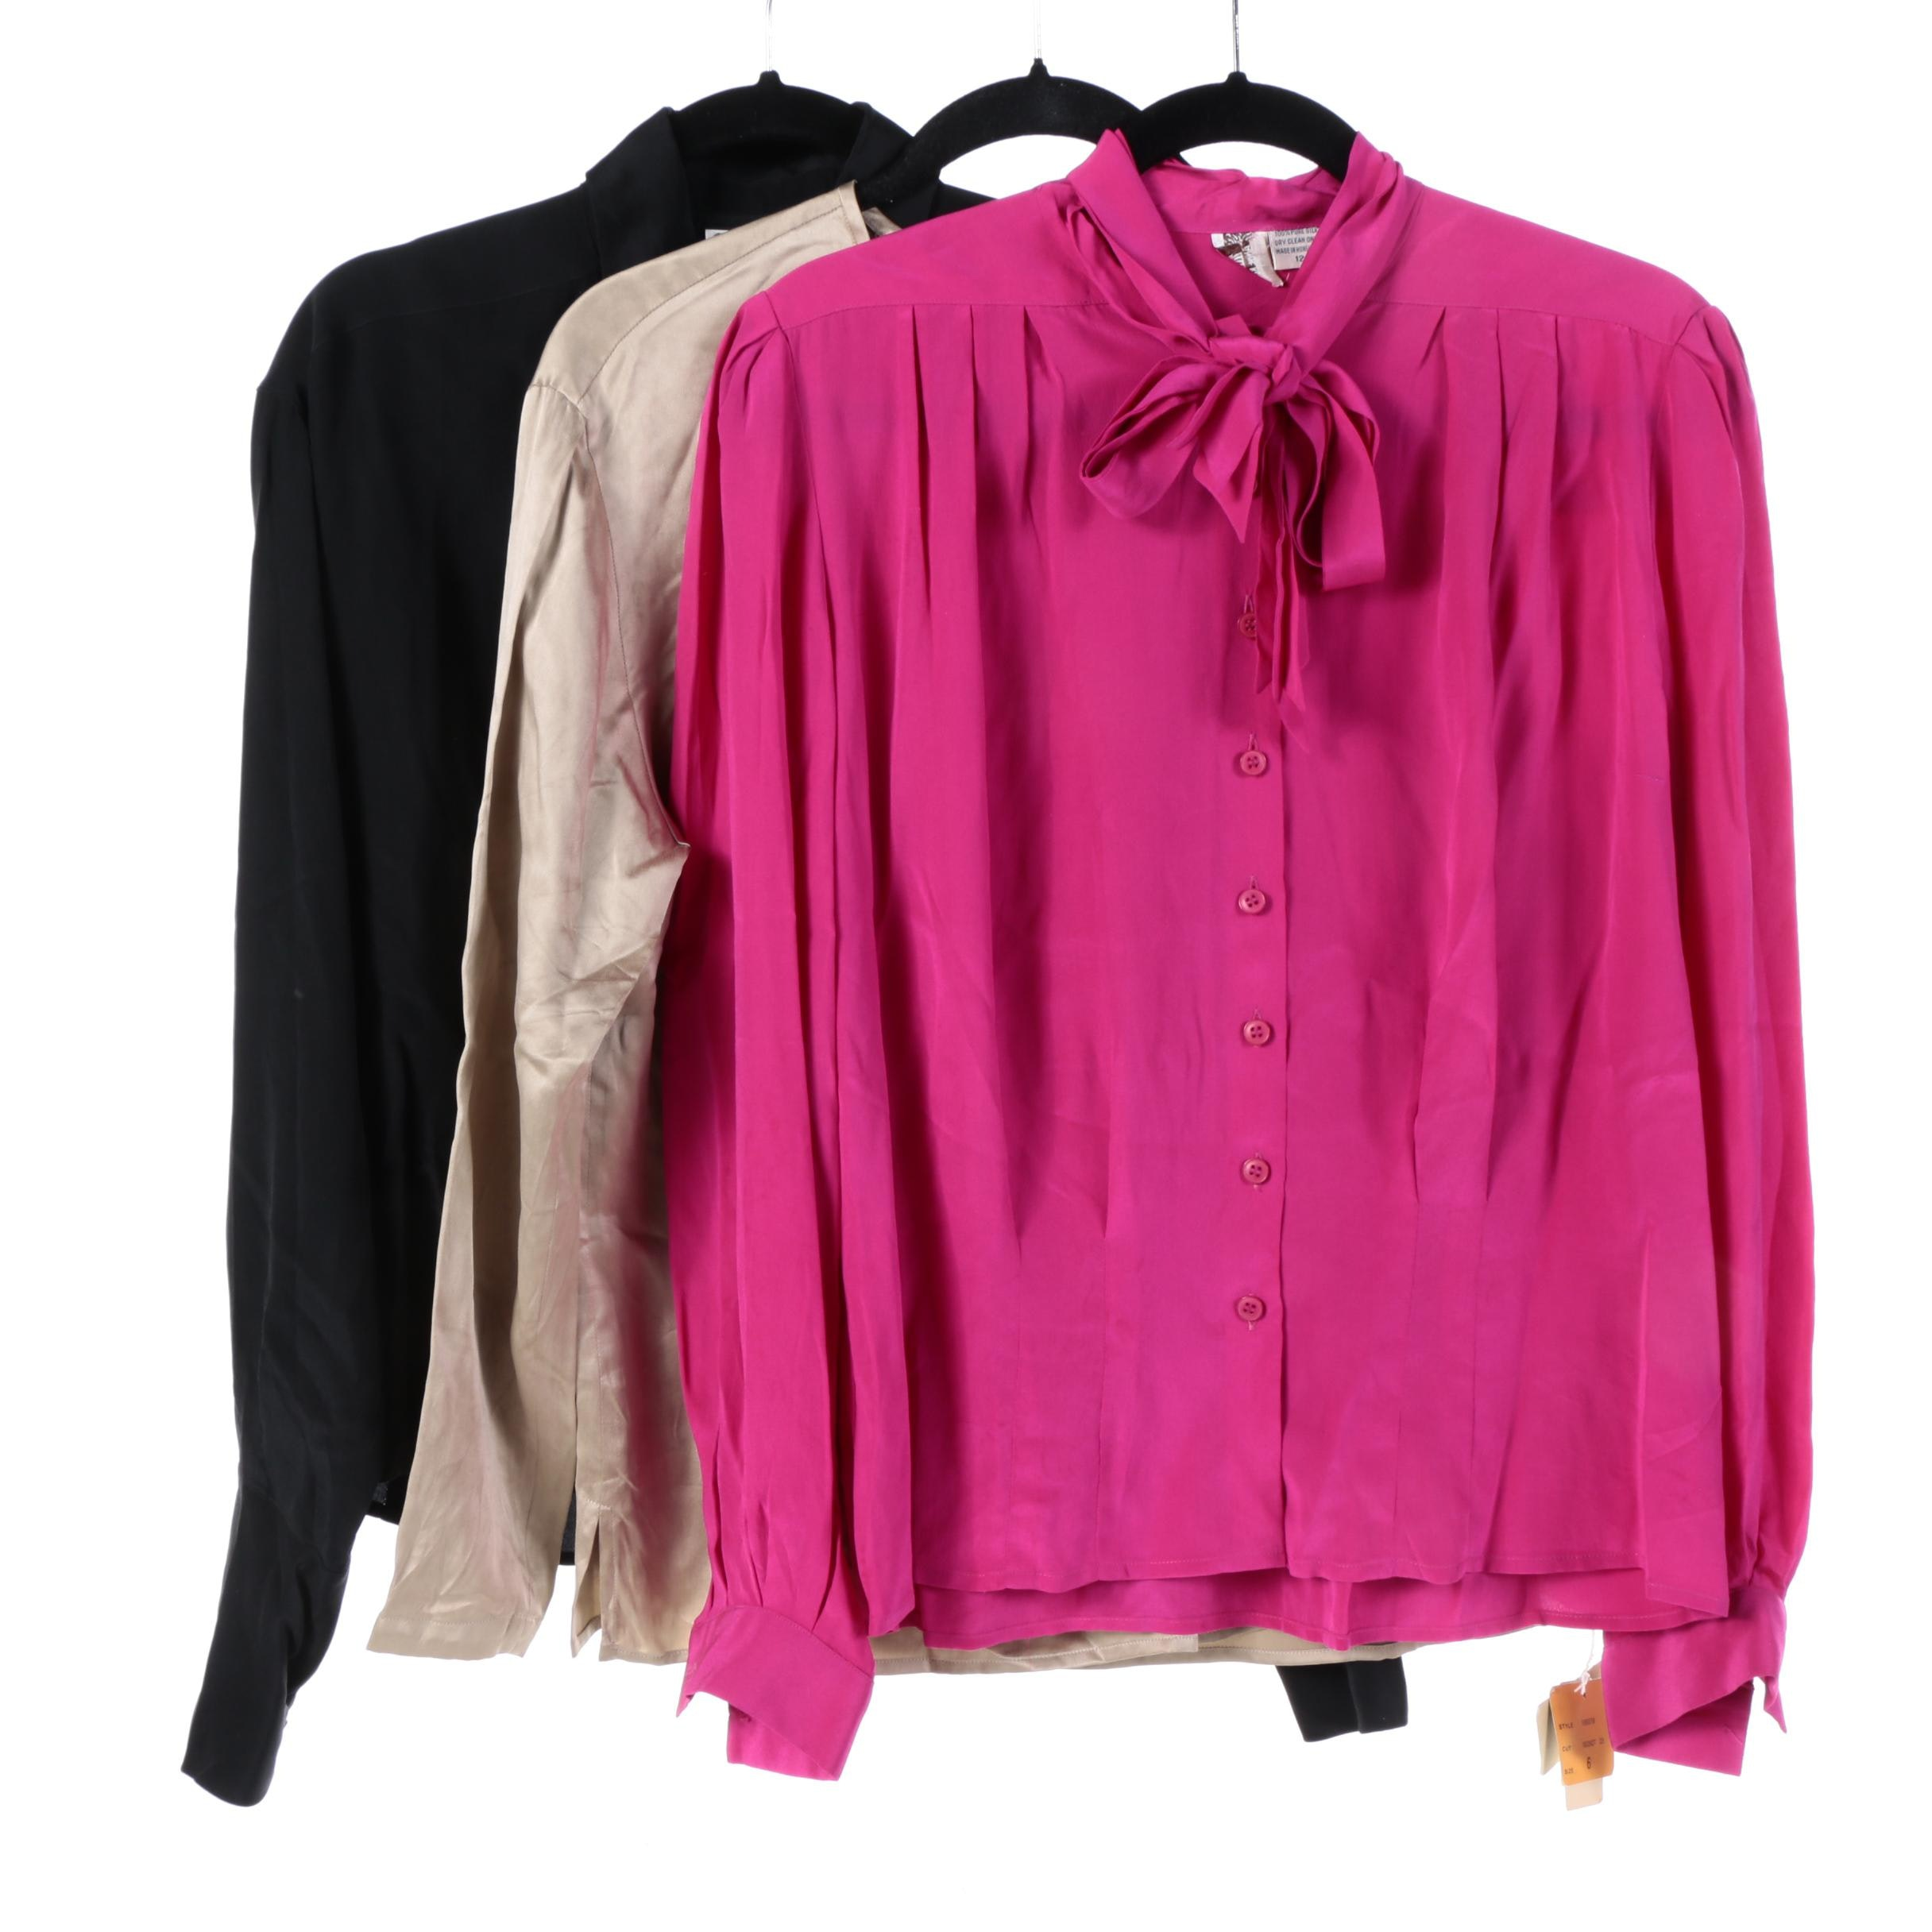 Women's Blouses Including Calvin Klein and Anne Klein II